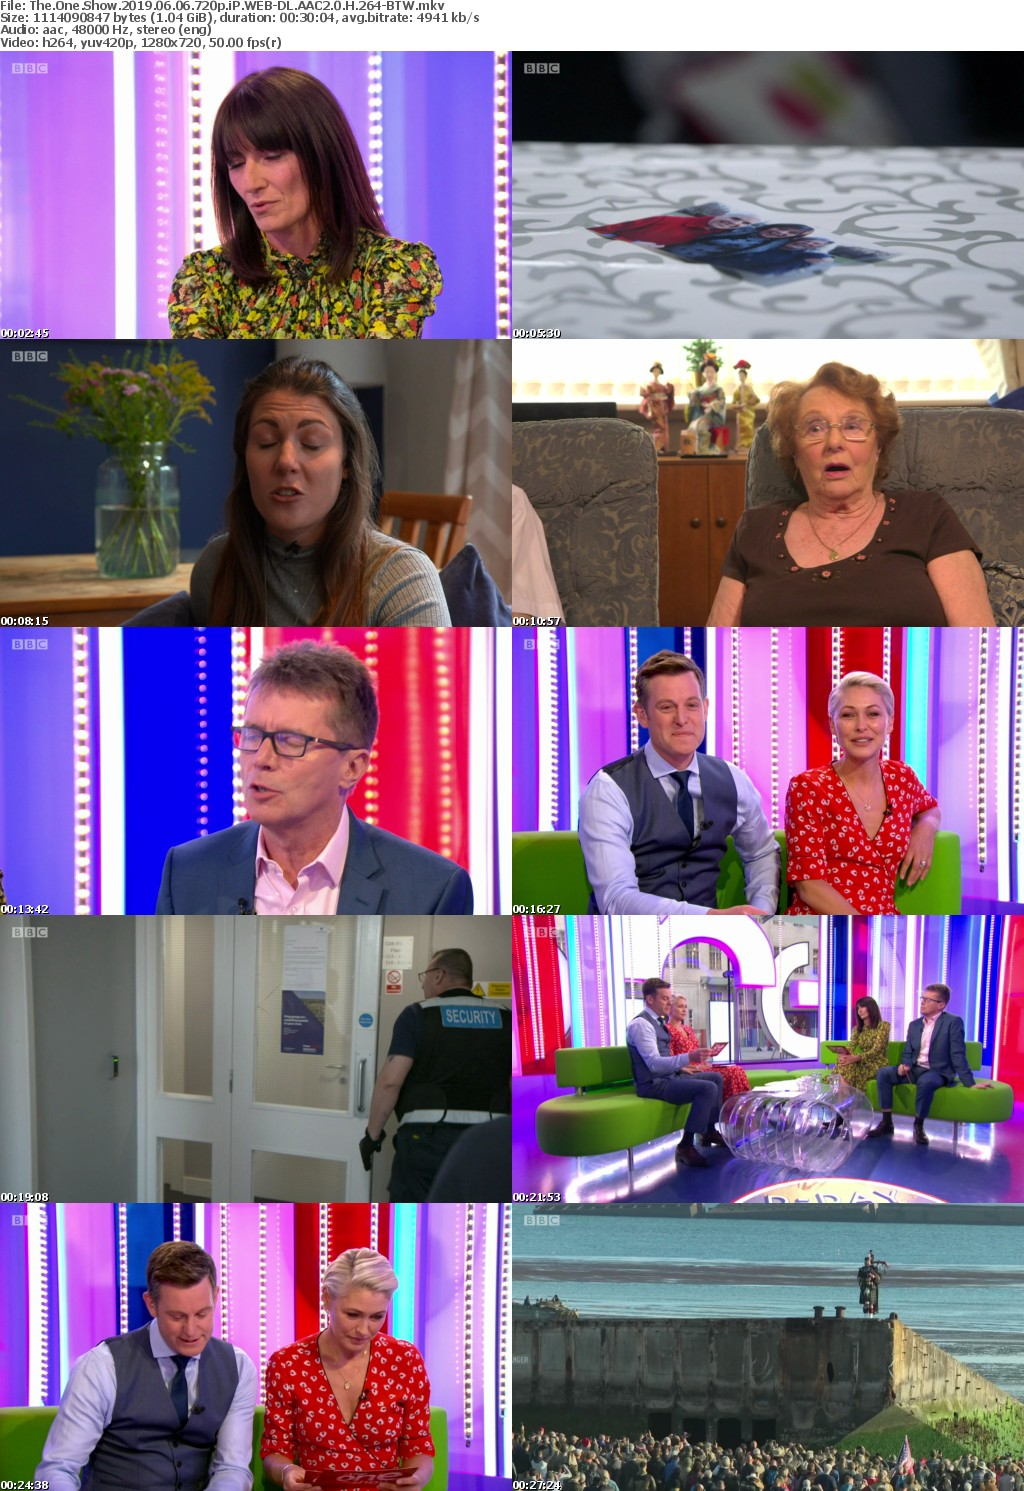 The One Show 2019 06 06 720p iP WEB-DL AAC2 0 H 264-BTW